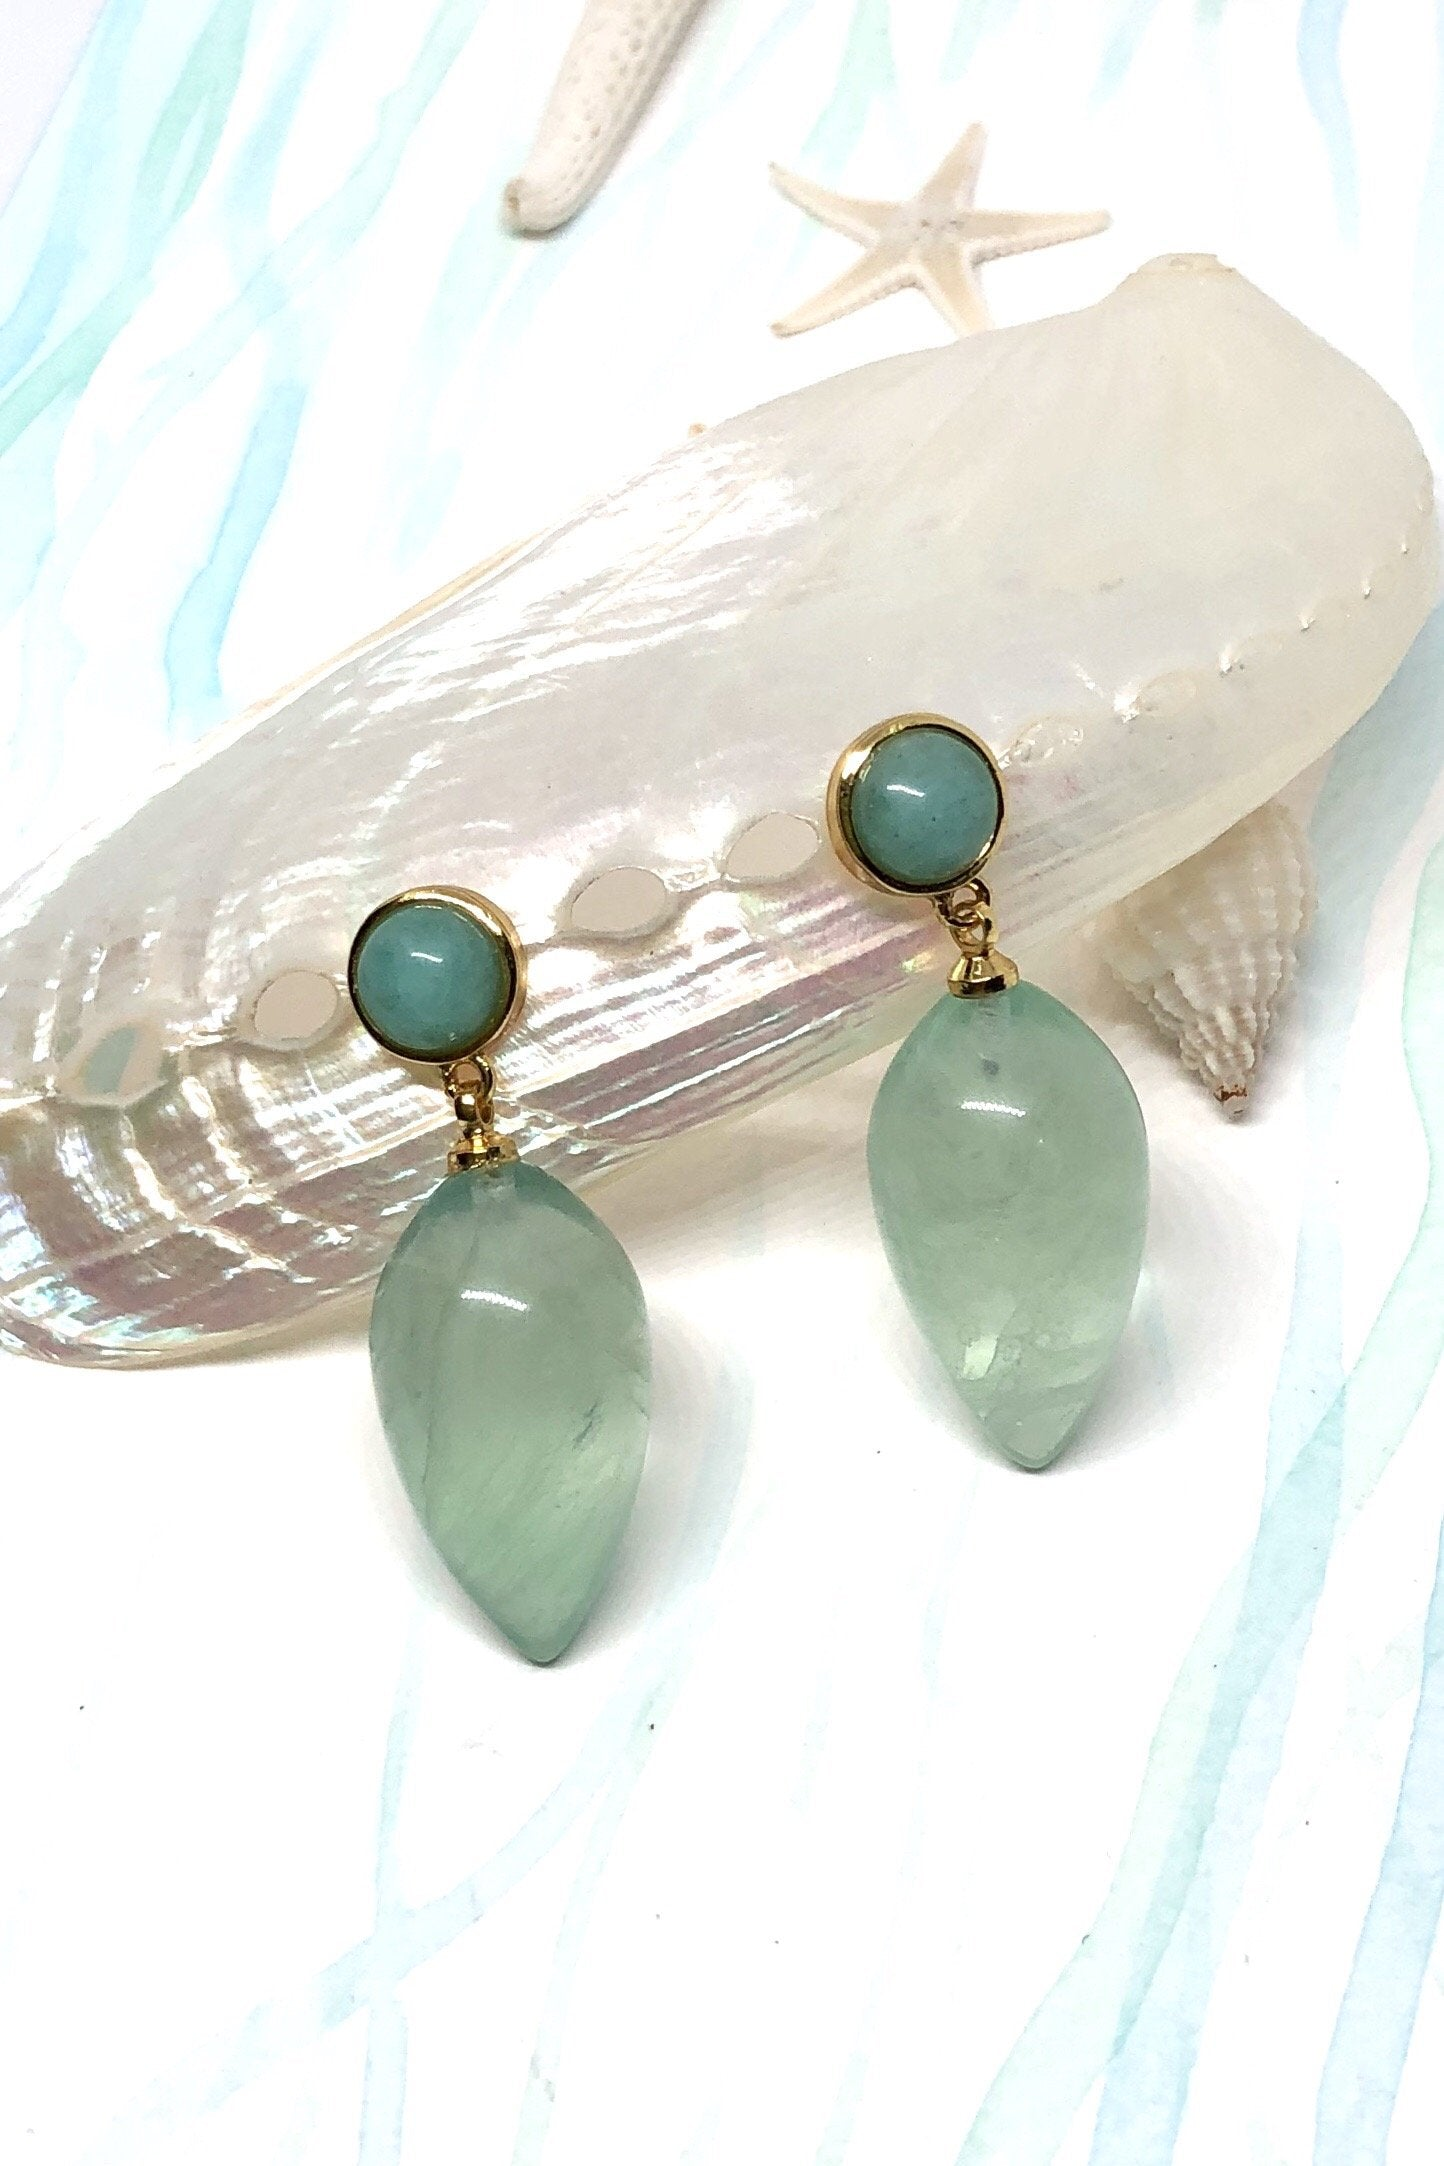 Green mint quartz drop style earrings